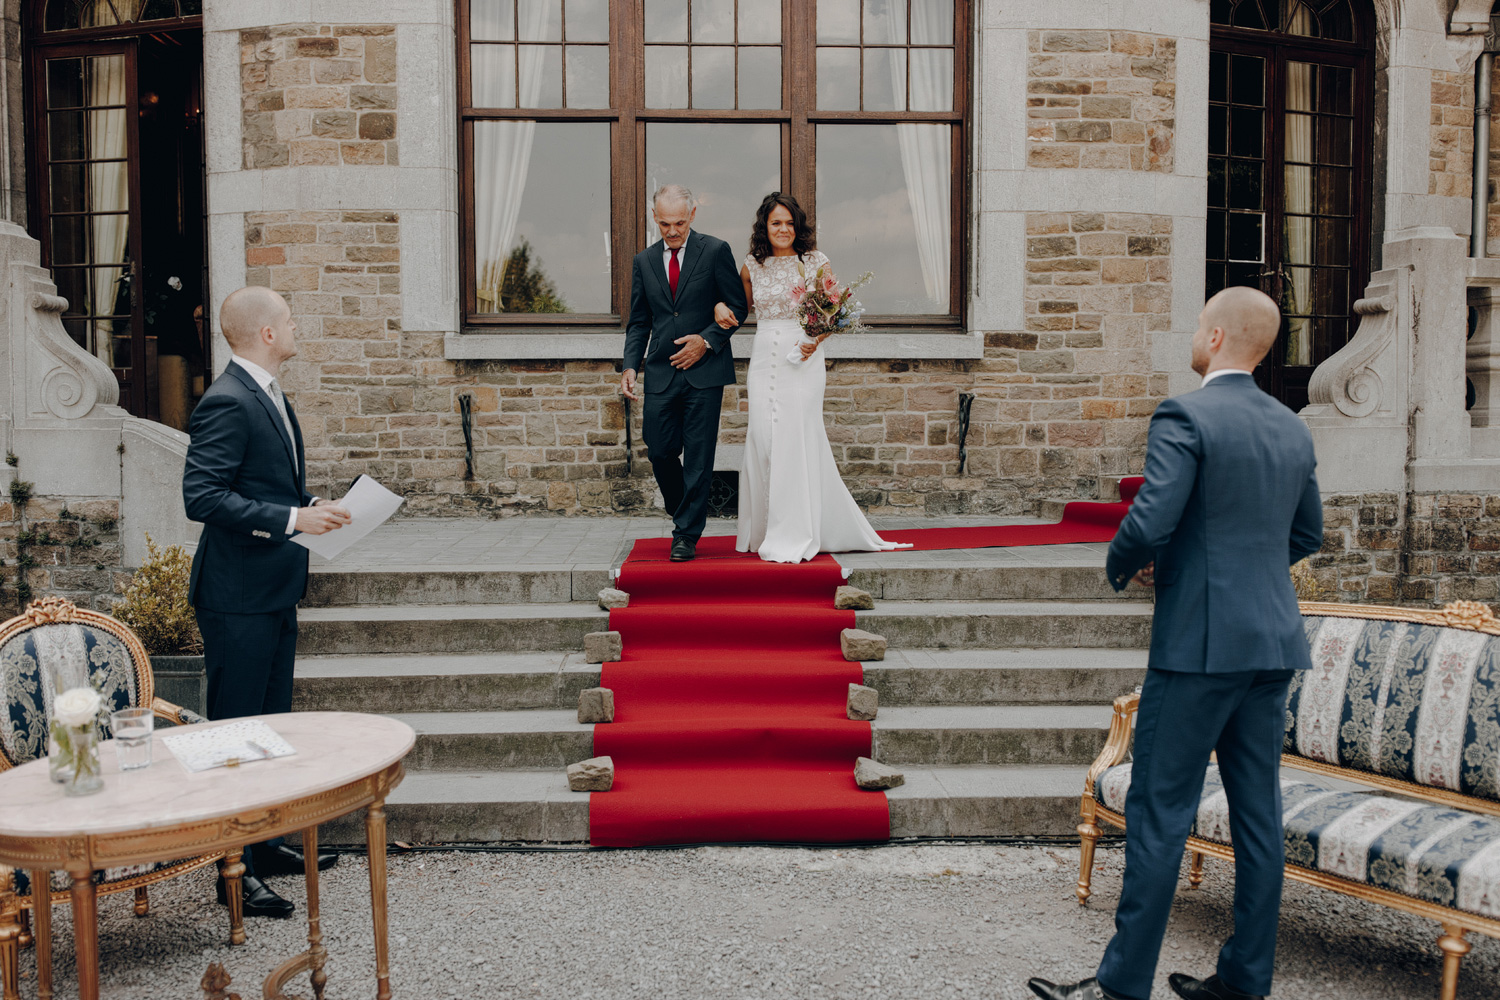 Bride arriving at ceremony in Chateau de Presseux